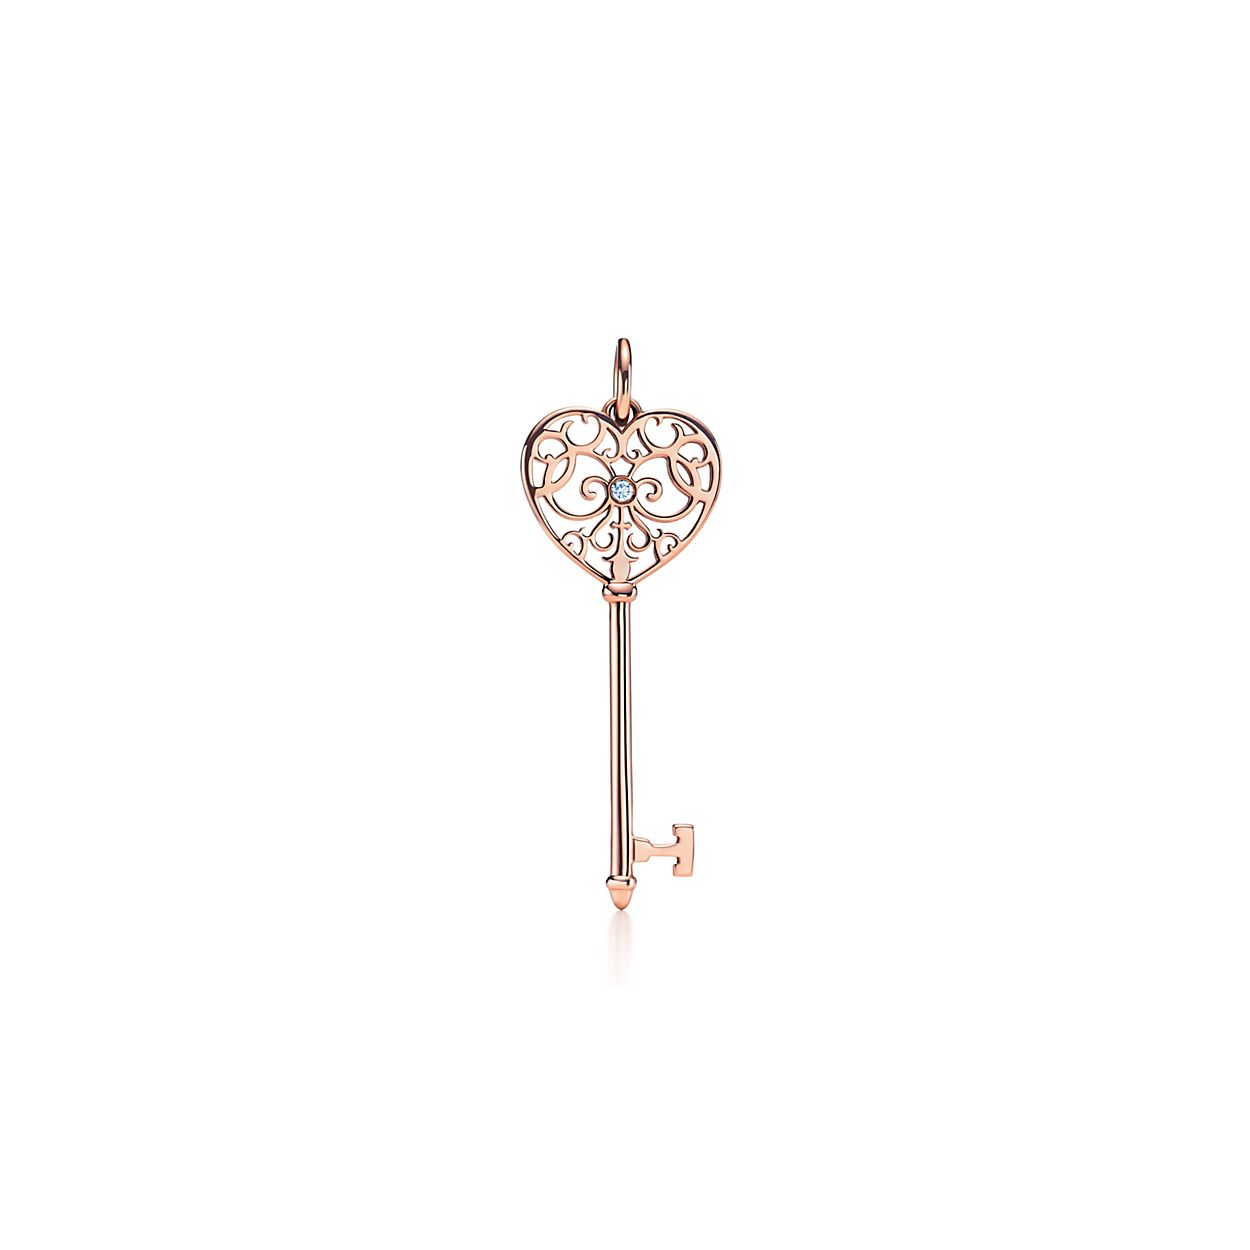 Tiffany keys enchant key pendant in 18k rose gold with diamonds tiffany keysenchant key tiffany keysenchant key aloadofball Gallery